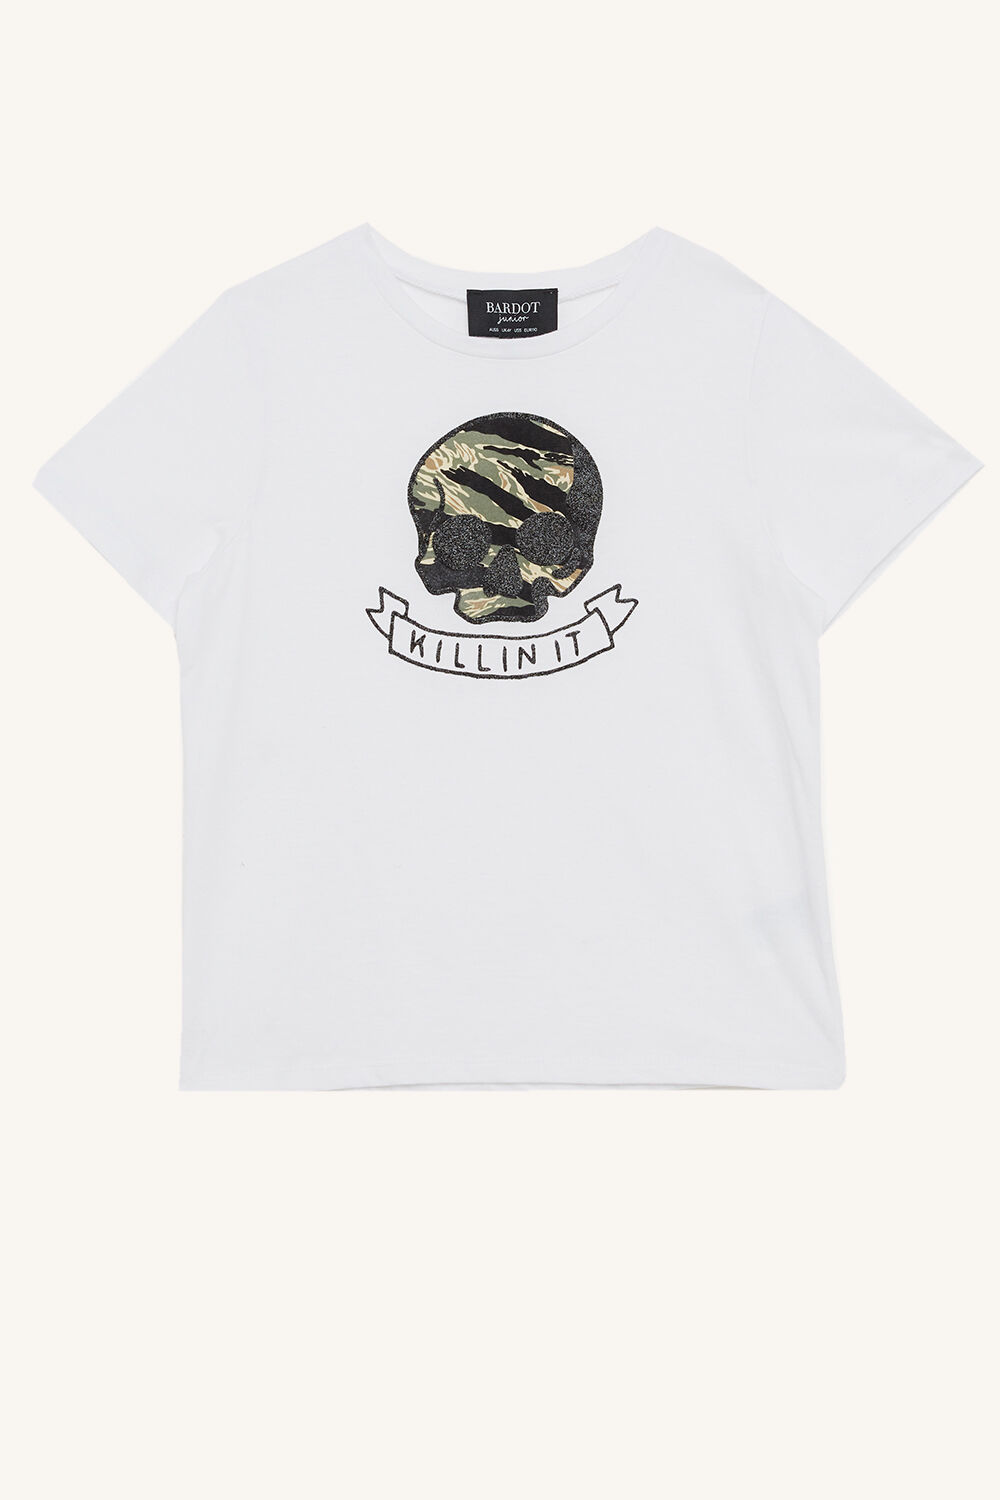 KILLIN IT TEE in colour BRIGHT WHITE